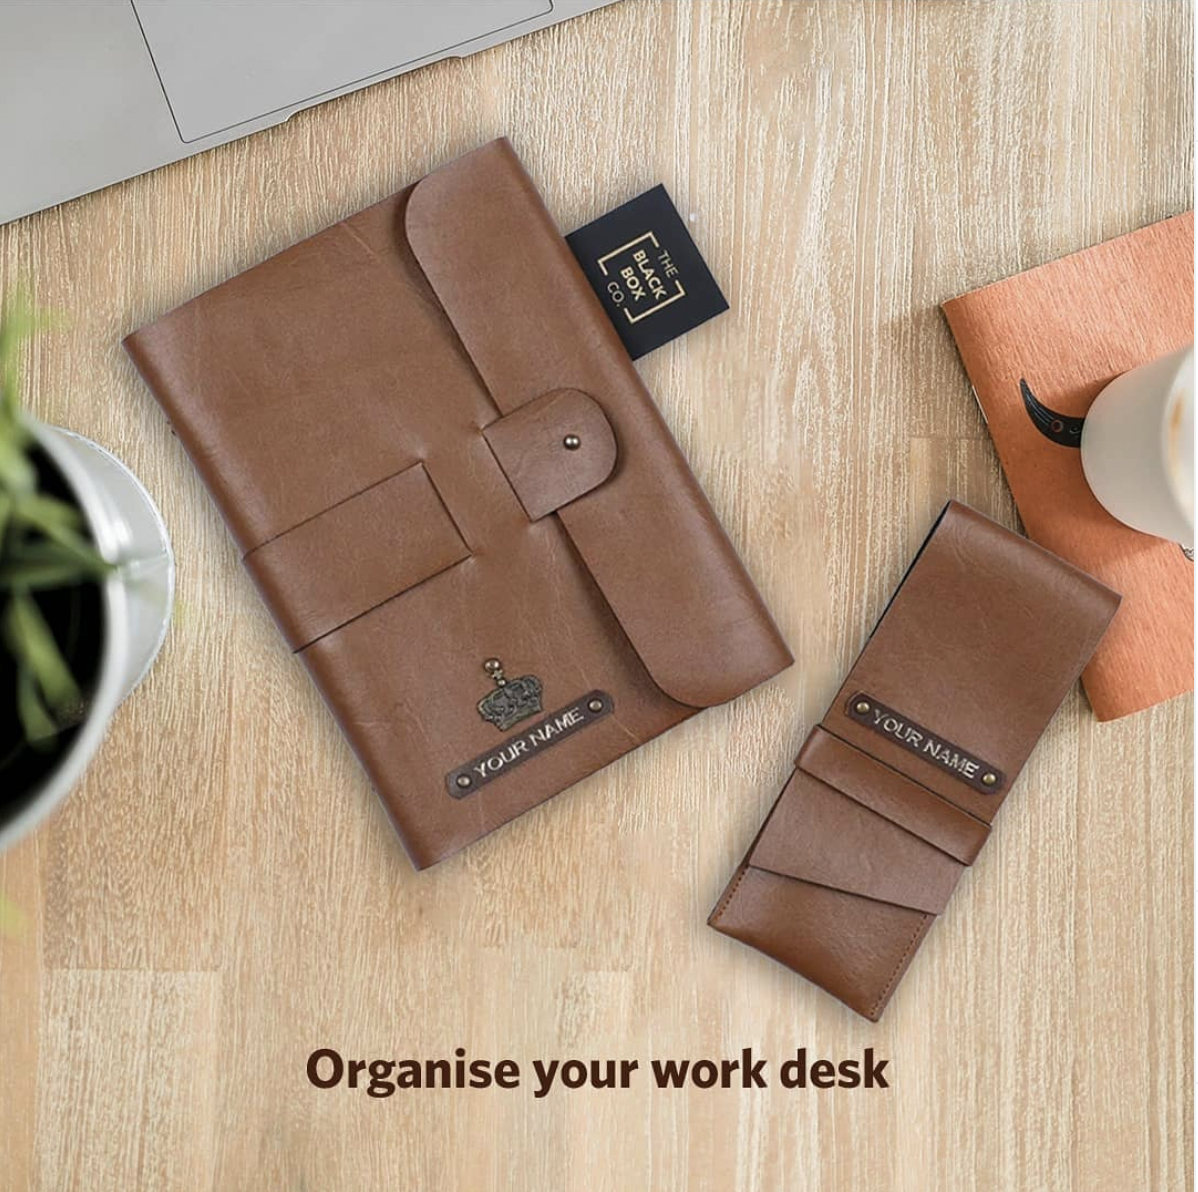 Organize your Work Desk